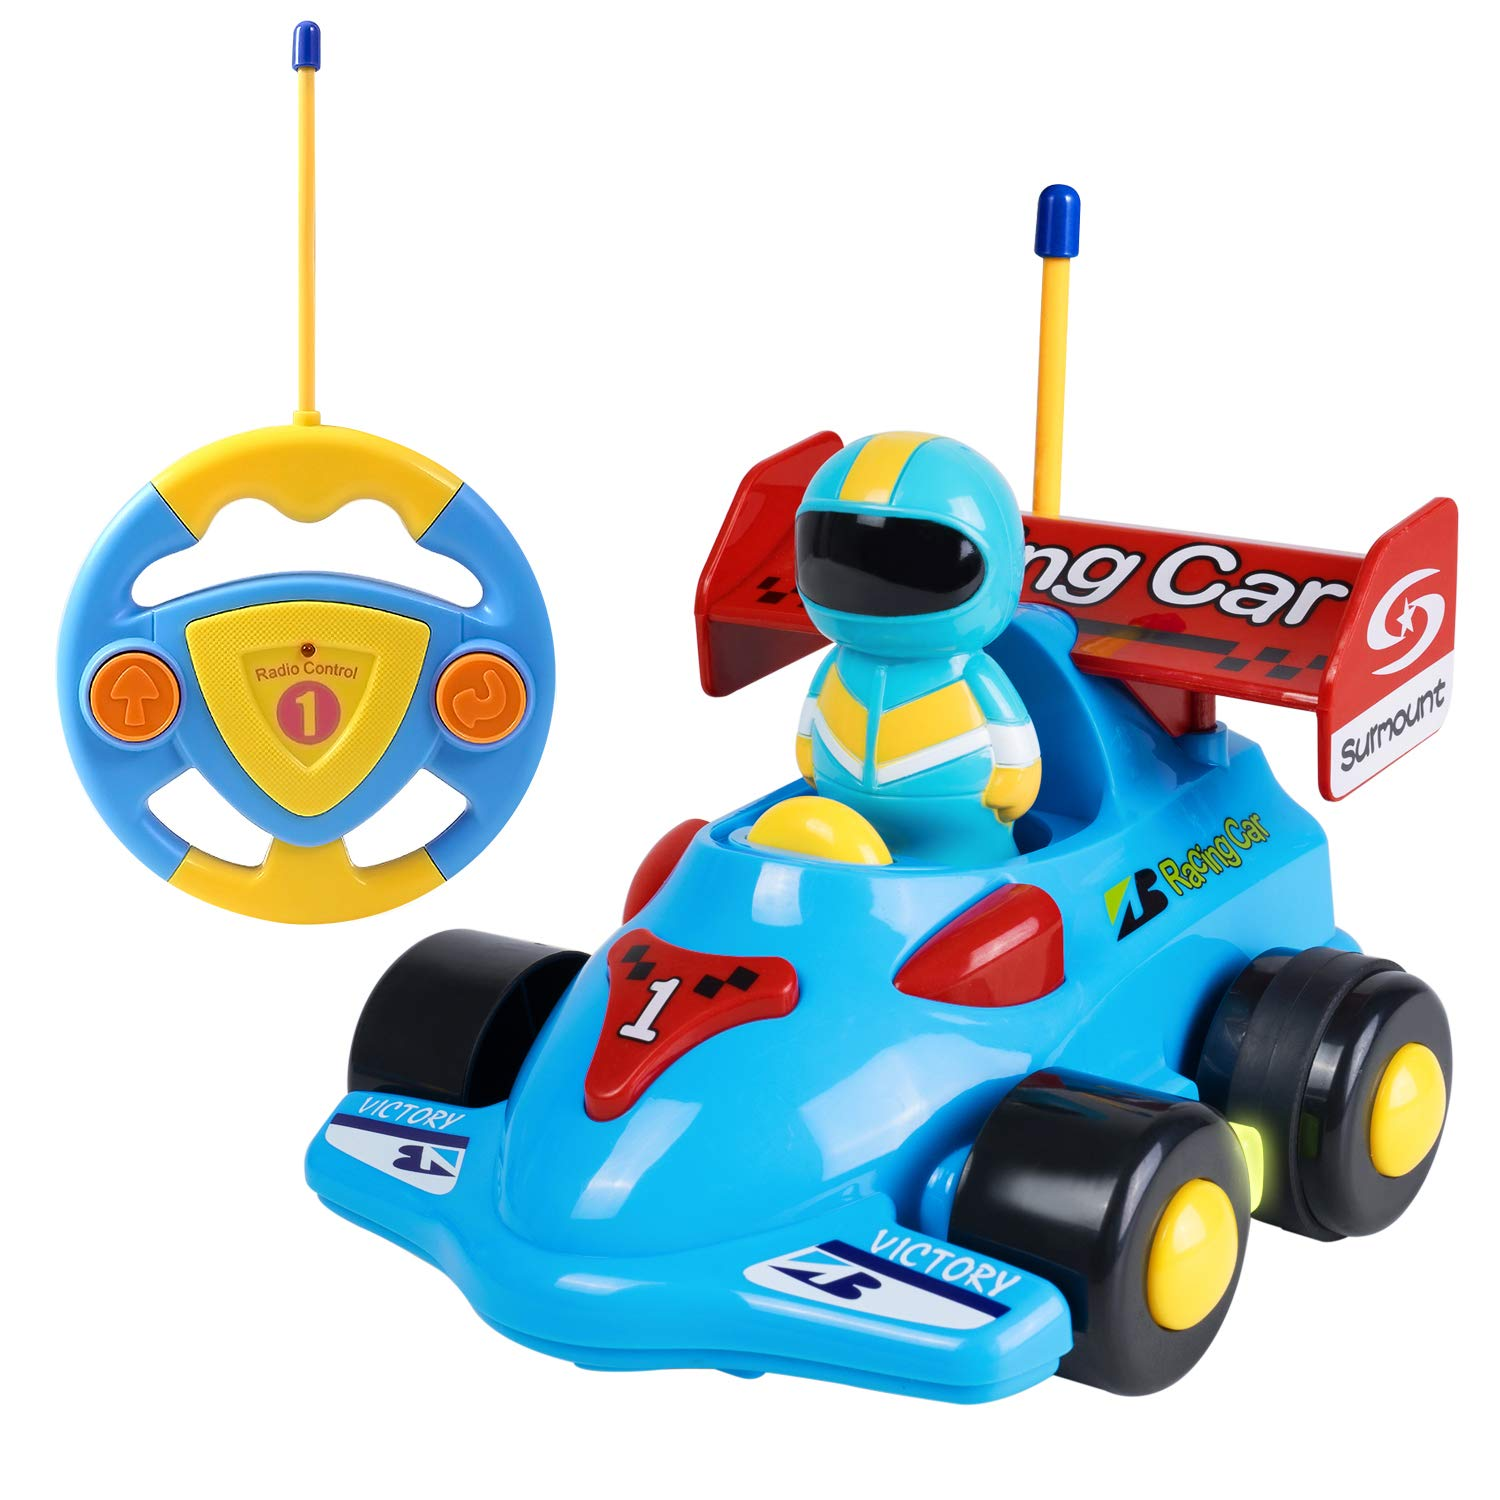 ANTAPRCIS Cartoon Remote Control Car Racer Toys For Toddlers Birthday Gift Present 3 Year Olds Boys